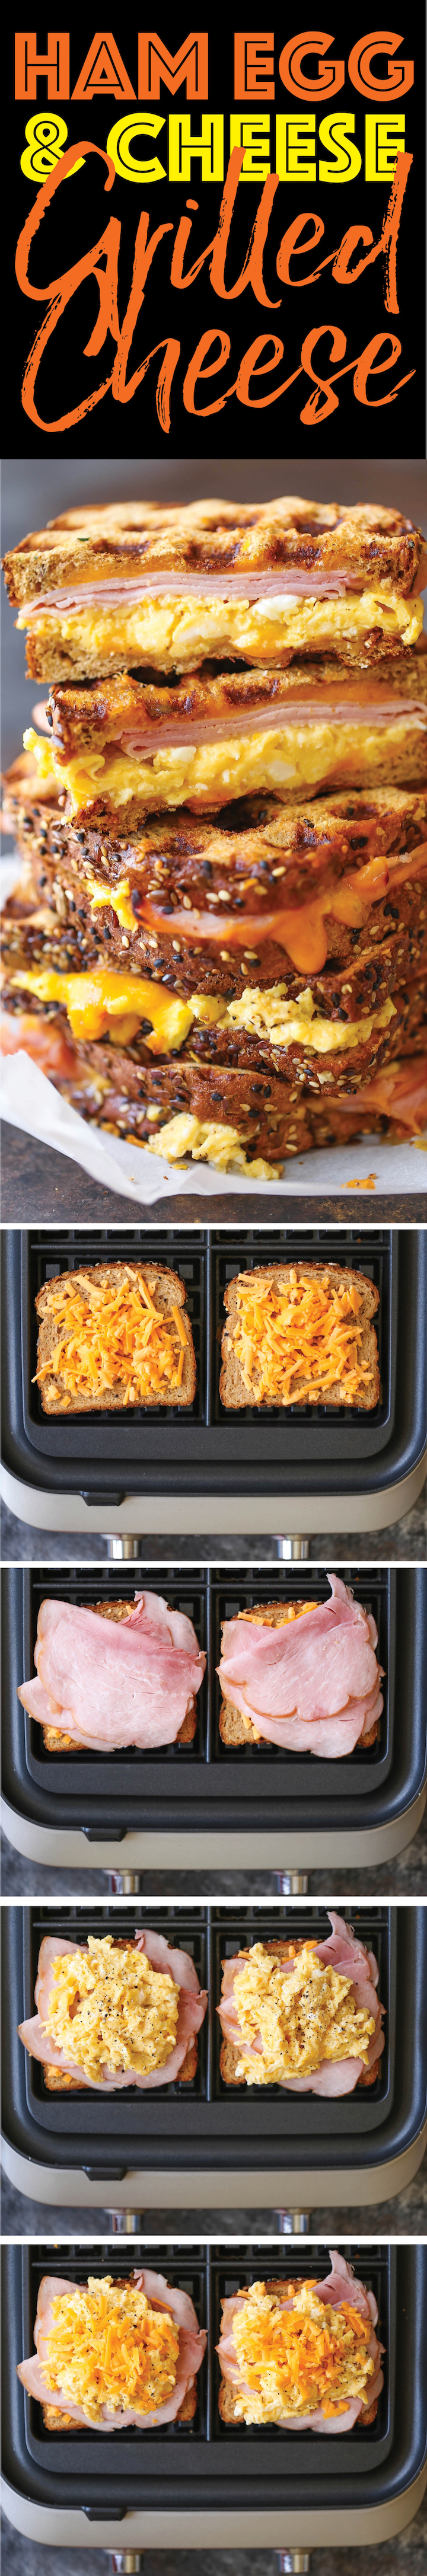 Ham Egg and Cheese Grilled Cheese - The must-have breakfast sandwich for all mornings made easily in your waffle-maker! You can make this ahead of time too!